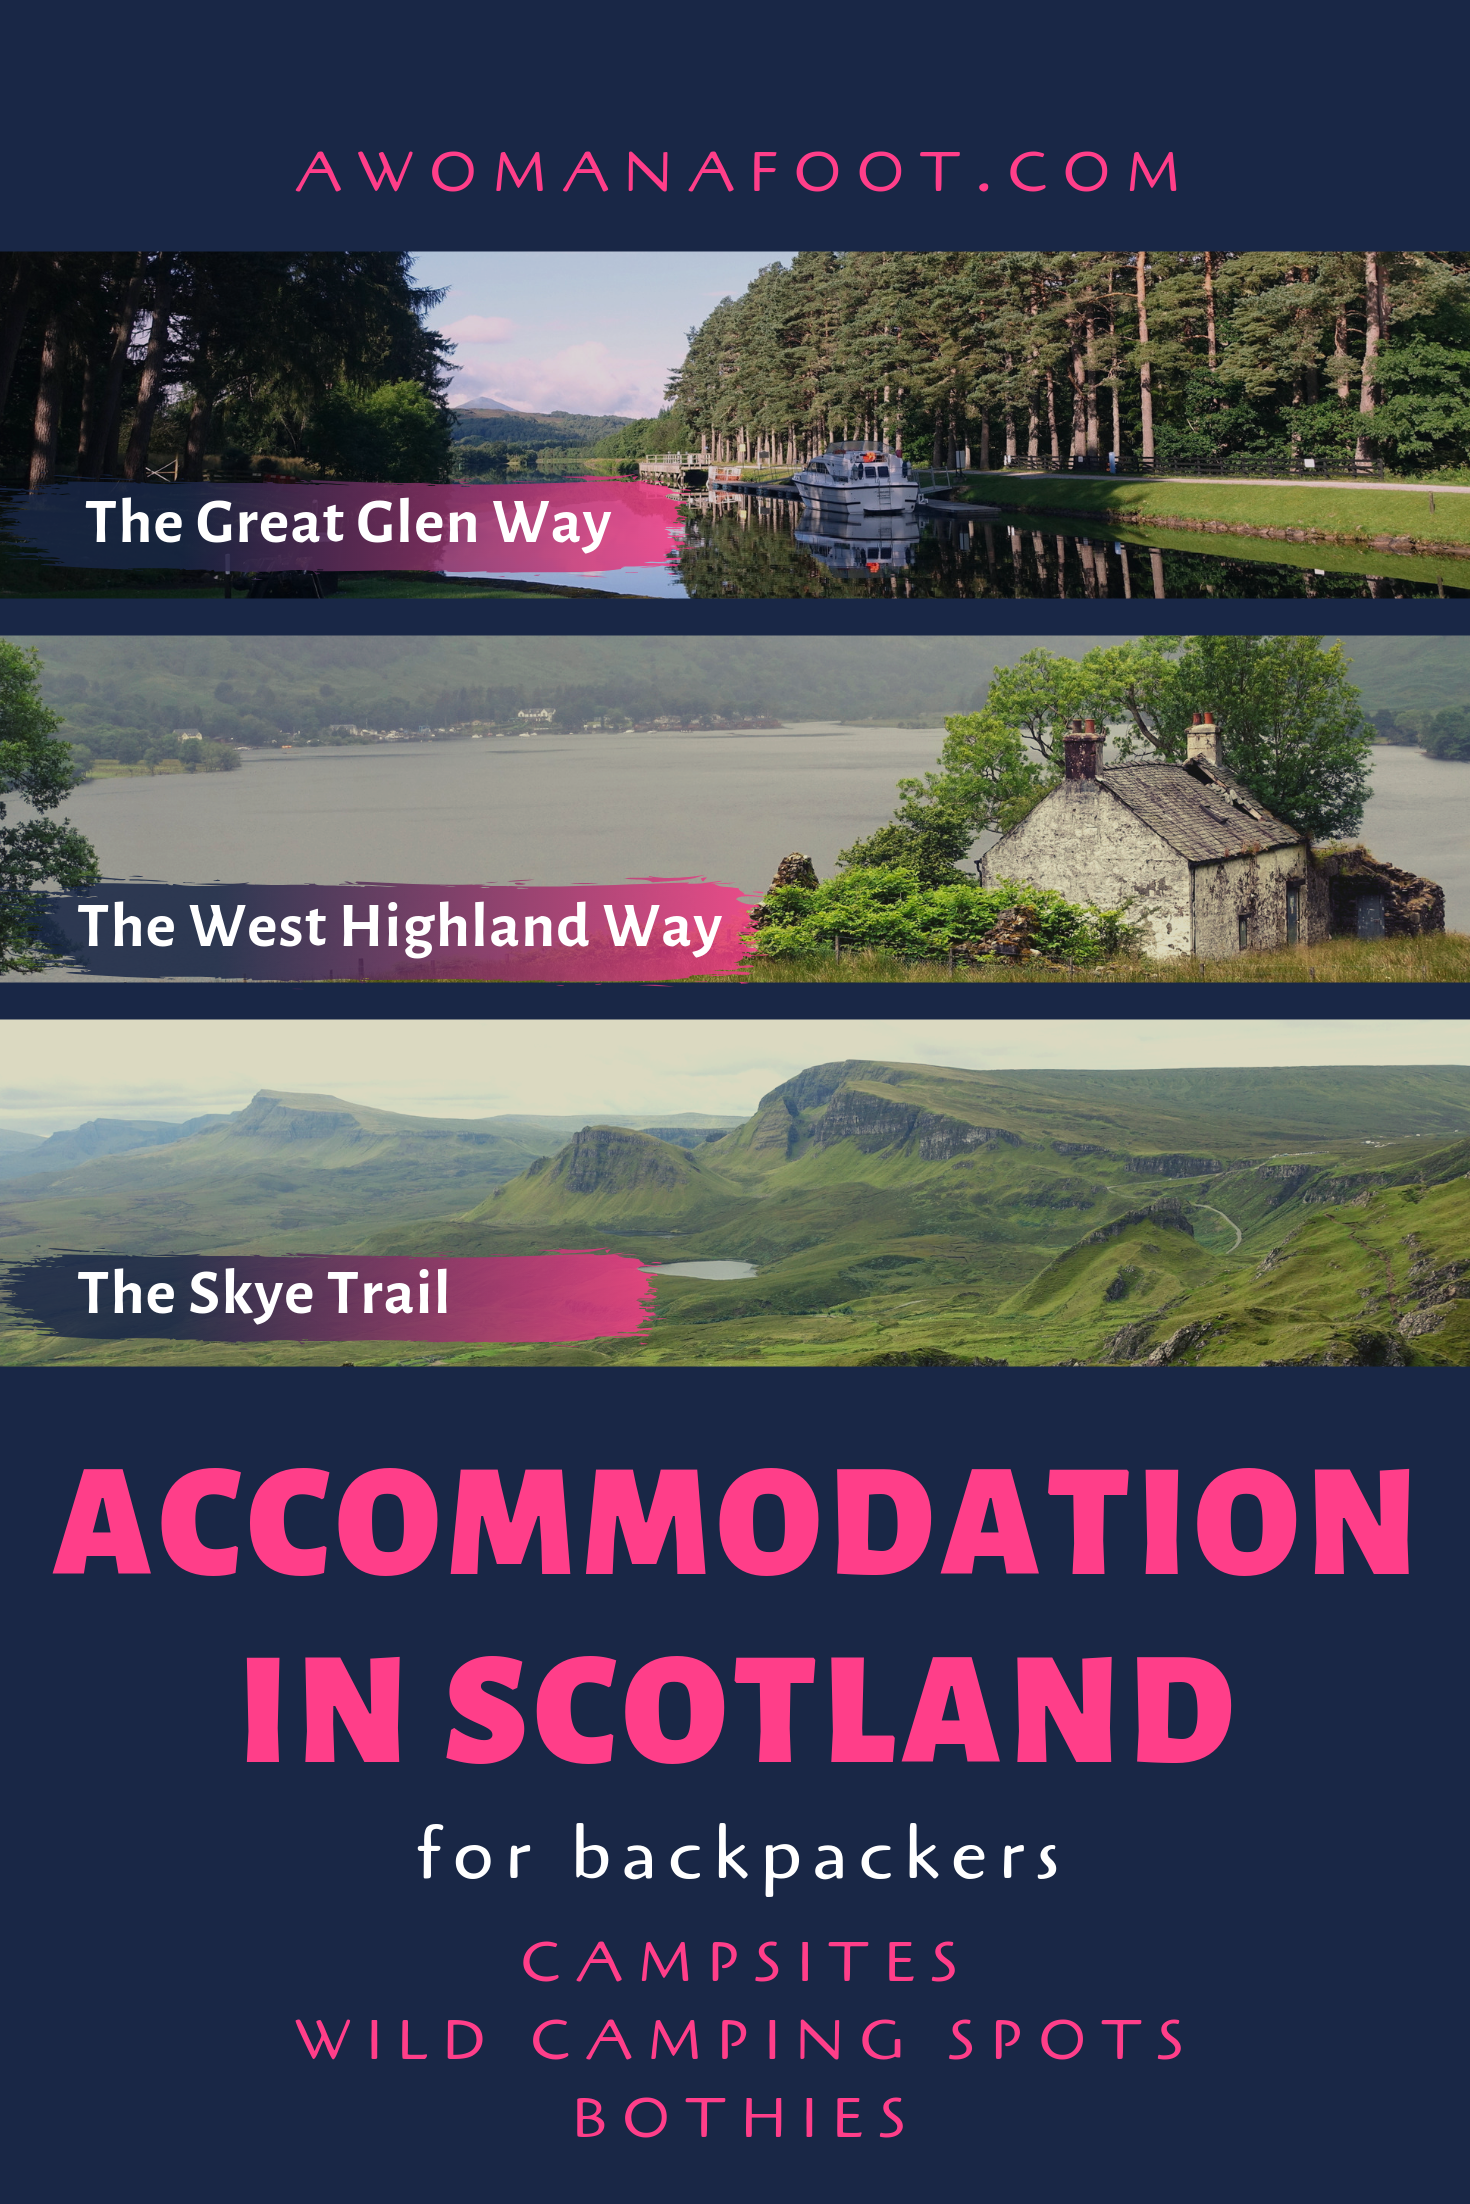 Thinking about hiking in Scotland? Find out about your accommodation options @ AWOMANAFOOT.COM! Learn where you can find a campsite, where you can wild camp or sleep at a bothy! Campsites in Scotland | Hiking destinations in Europe | Hiking Scottish Trail | Where to camp on West Highland Way | Campsites on Great Glen Way | Wild Camping on the Isle of Skye | Accommodation | #camping #campsites #Scotland #Skye #WHW #WestHighlandWay #GreatGlenWay #SkyeTrail #bothies #wildcamping